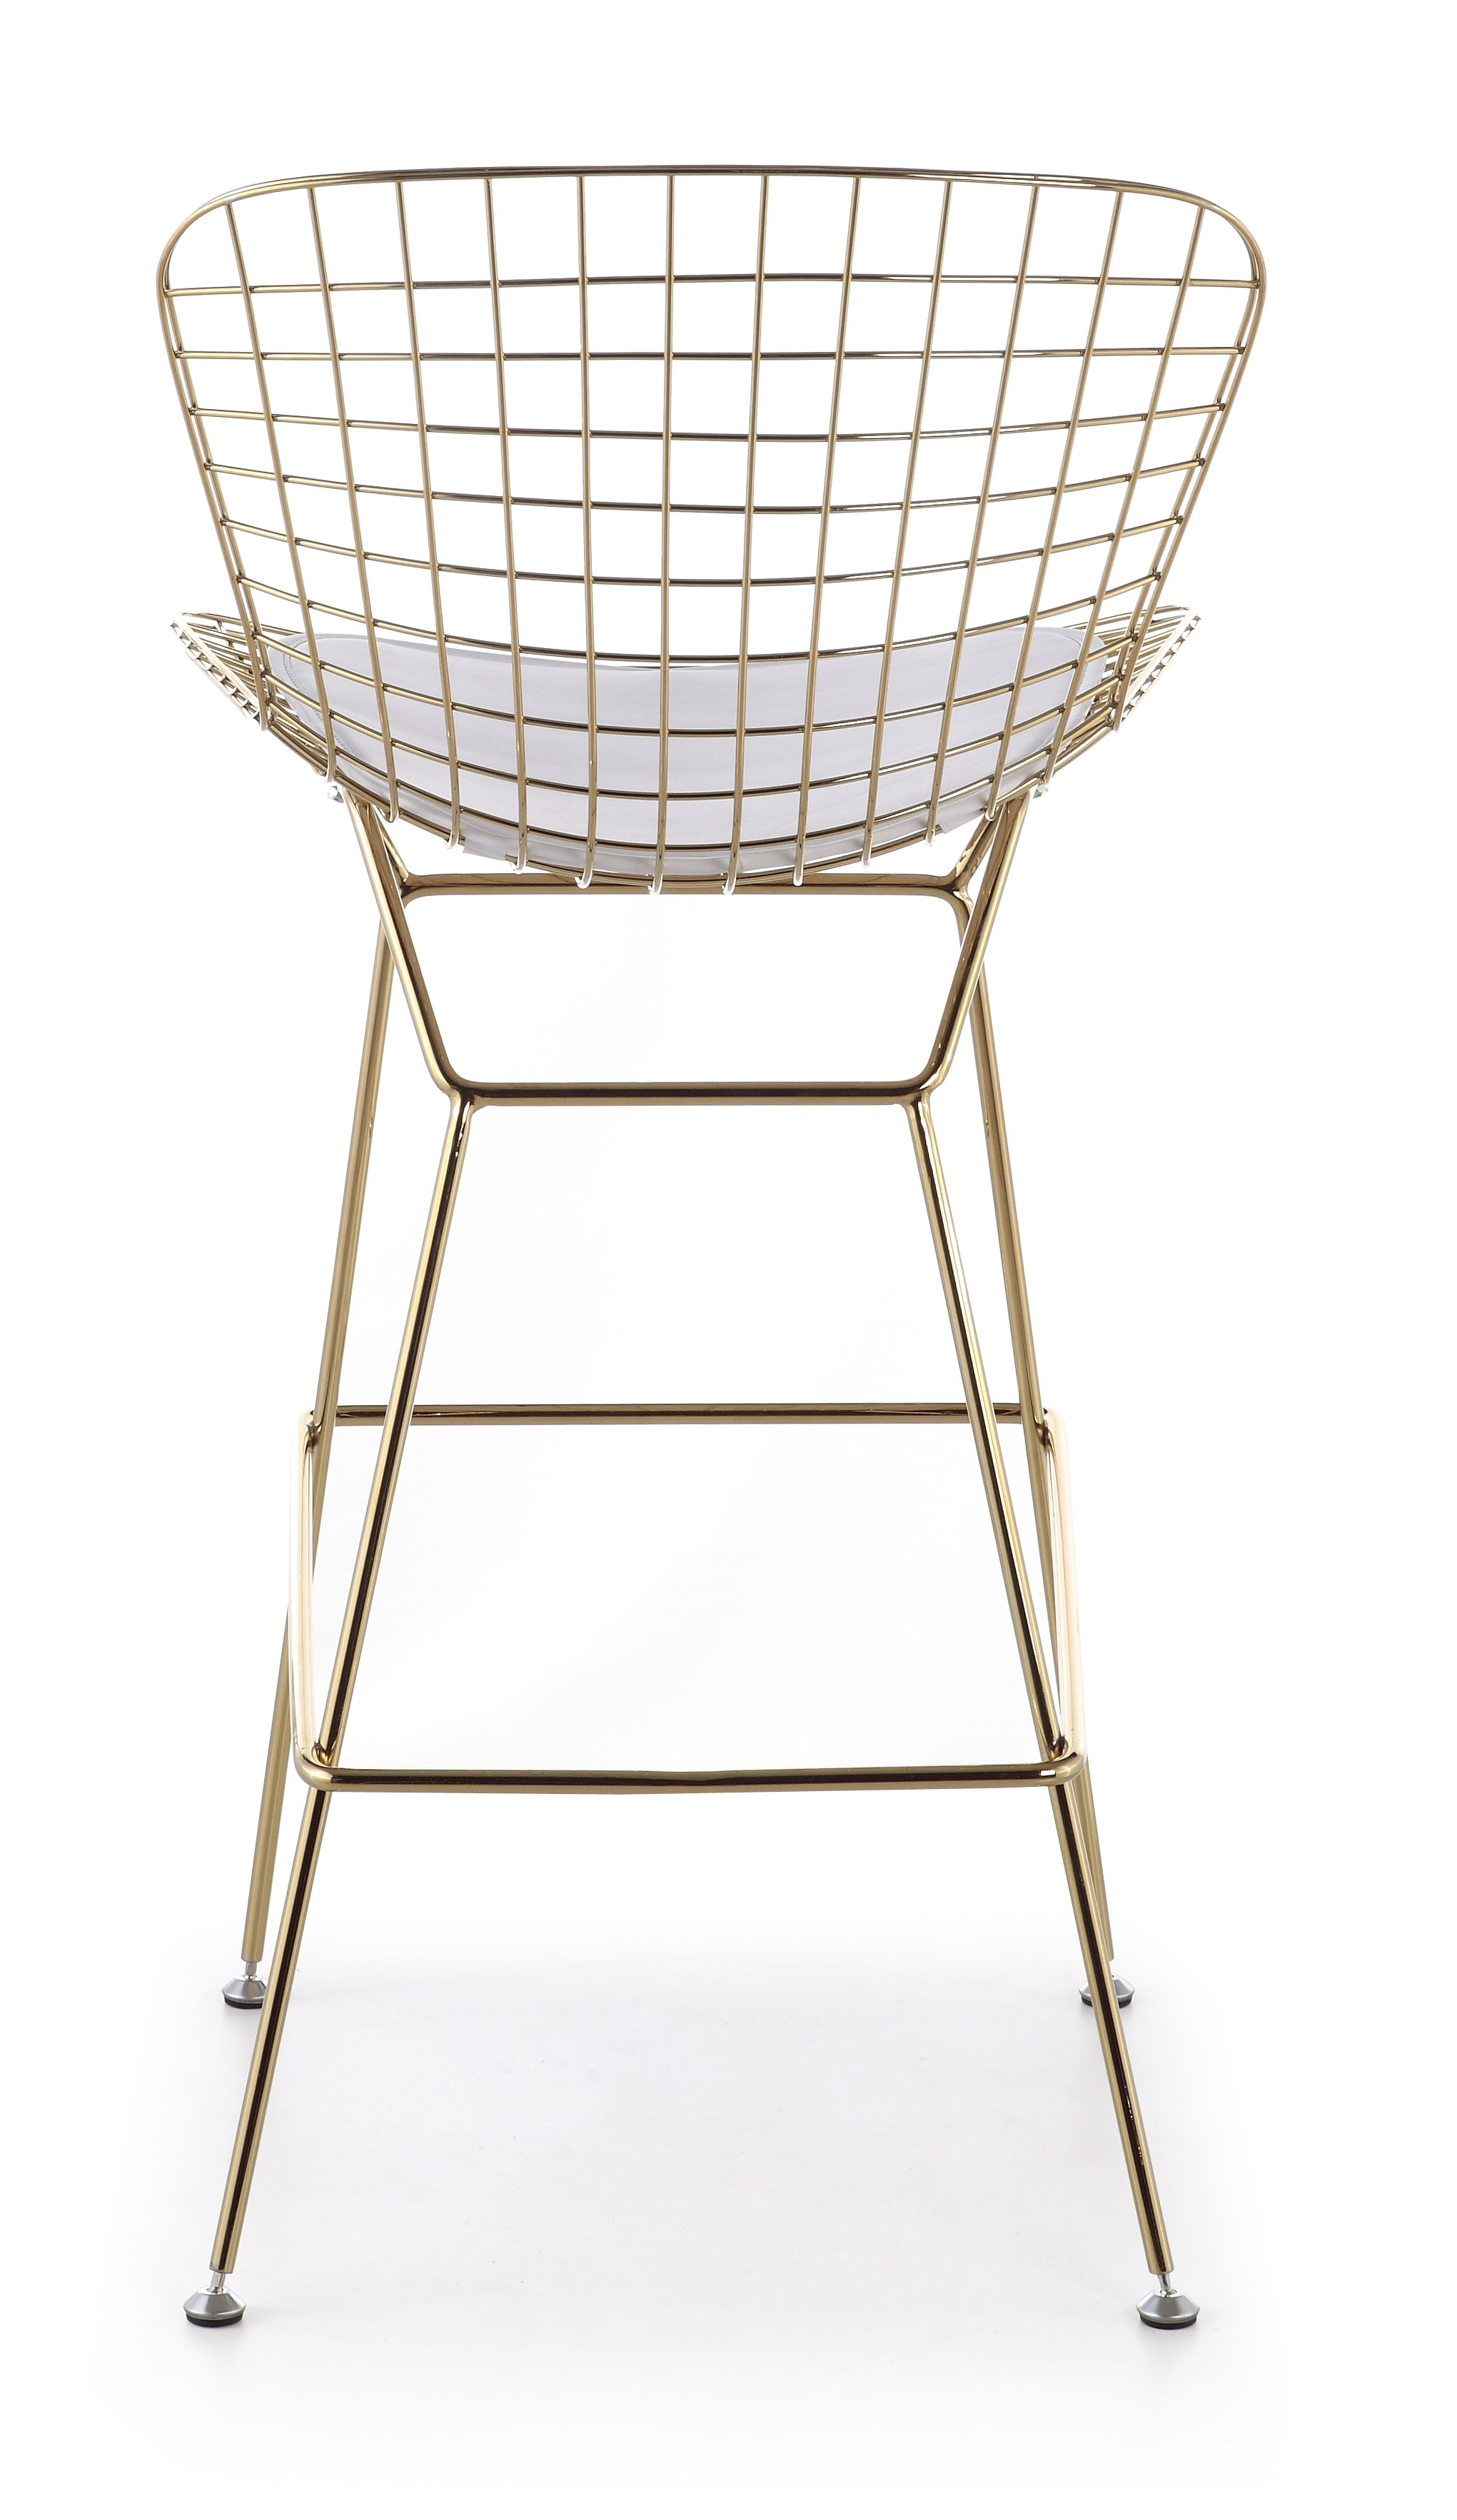 bertoiabarstoolgold. bertoia bar stool in gold  advancedinteriordesignscom